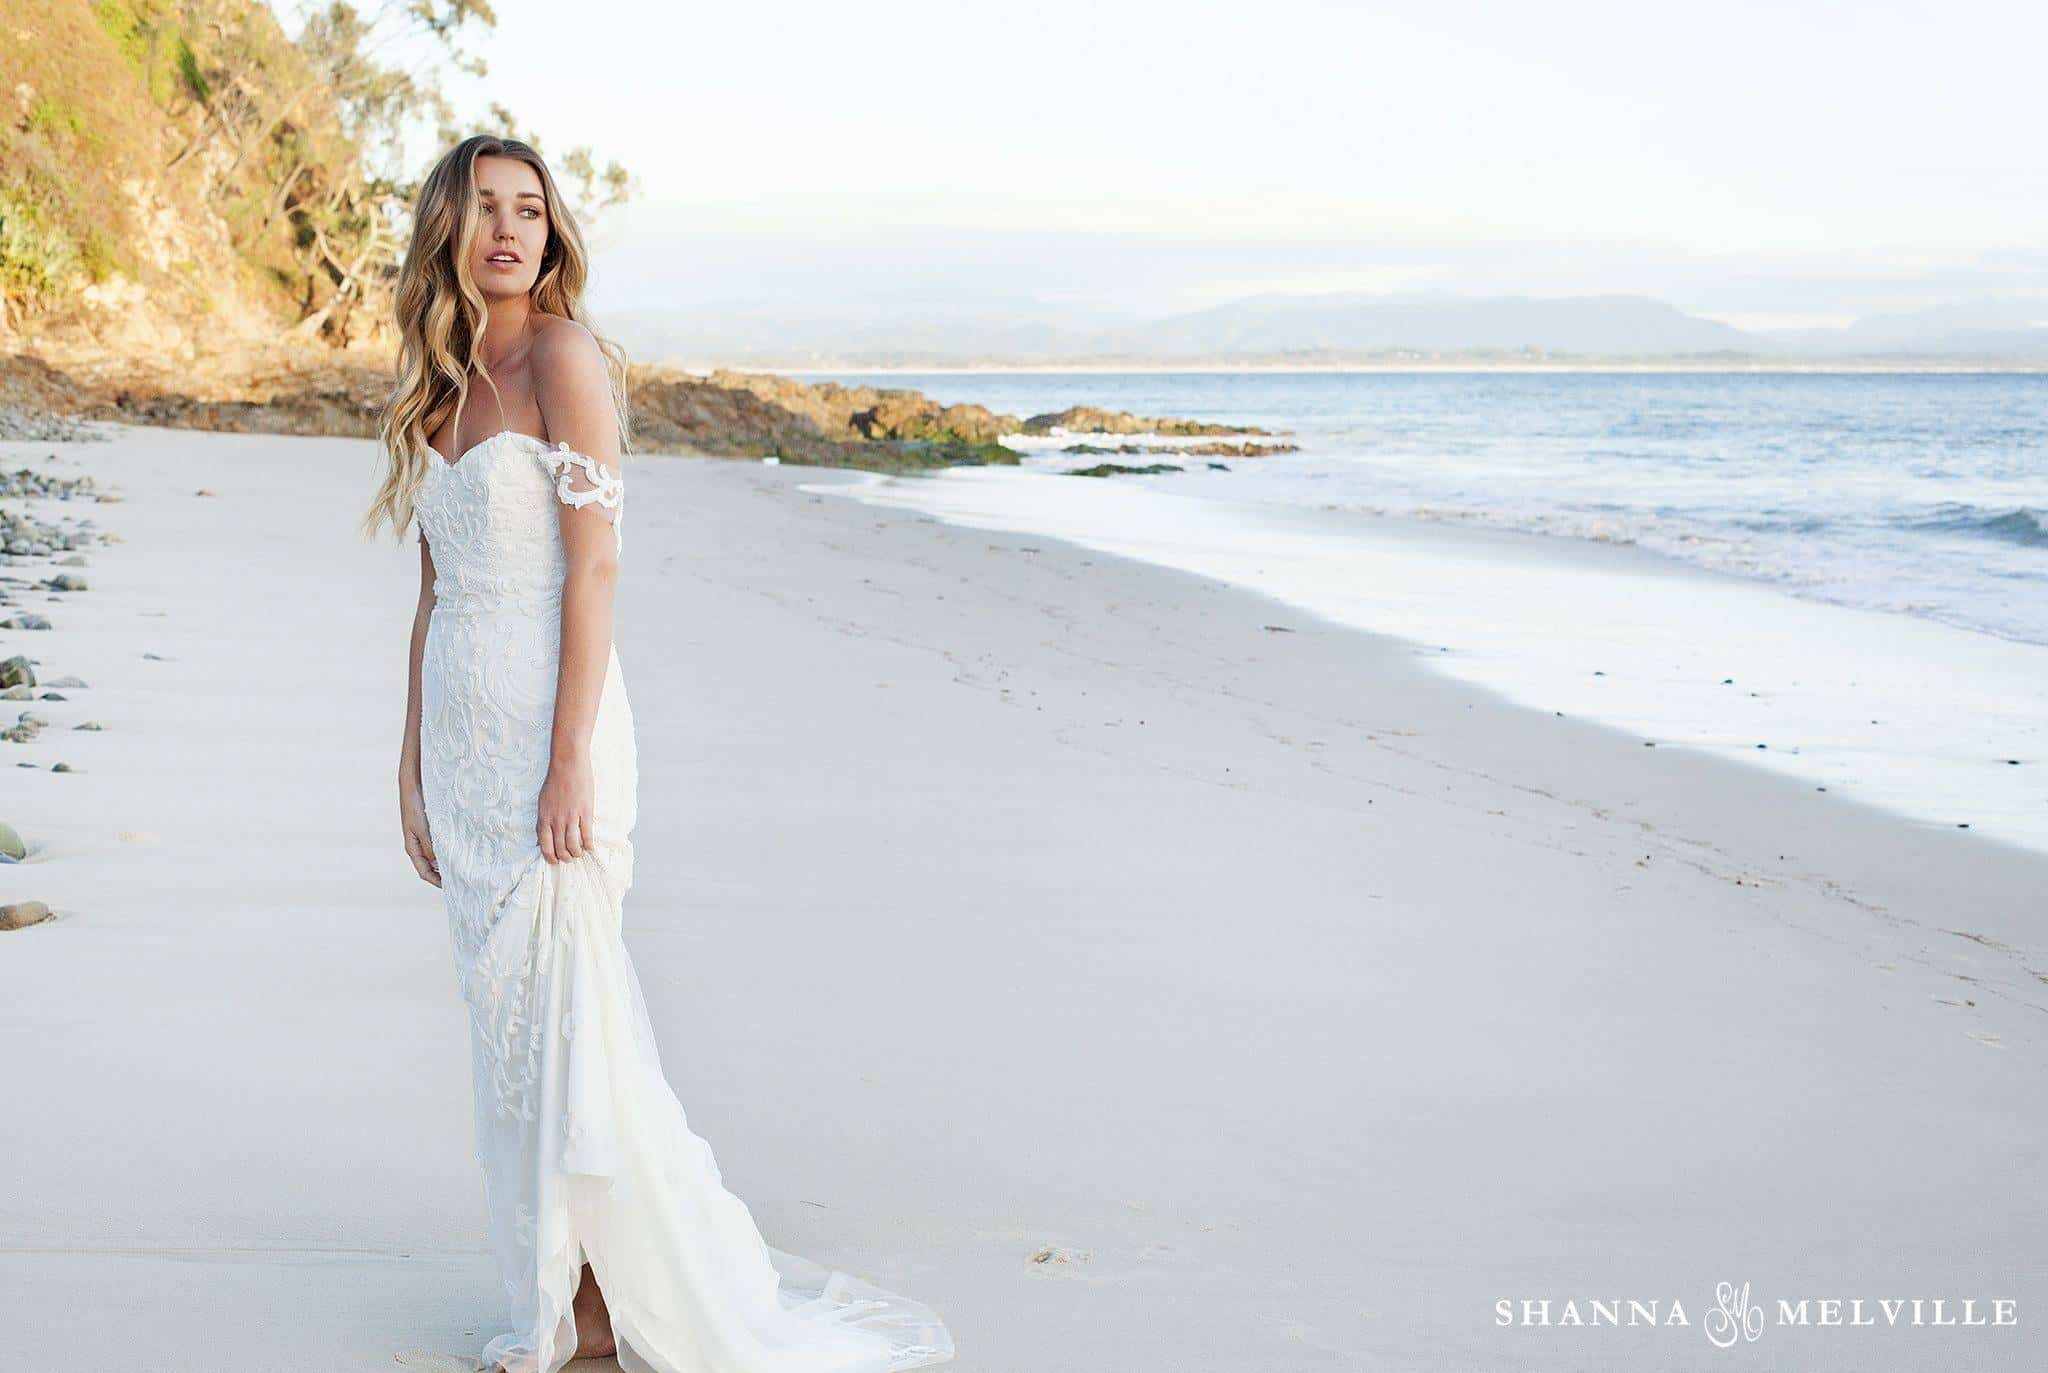 Shanna Melville's new collection for 2018